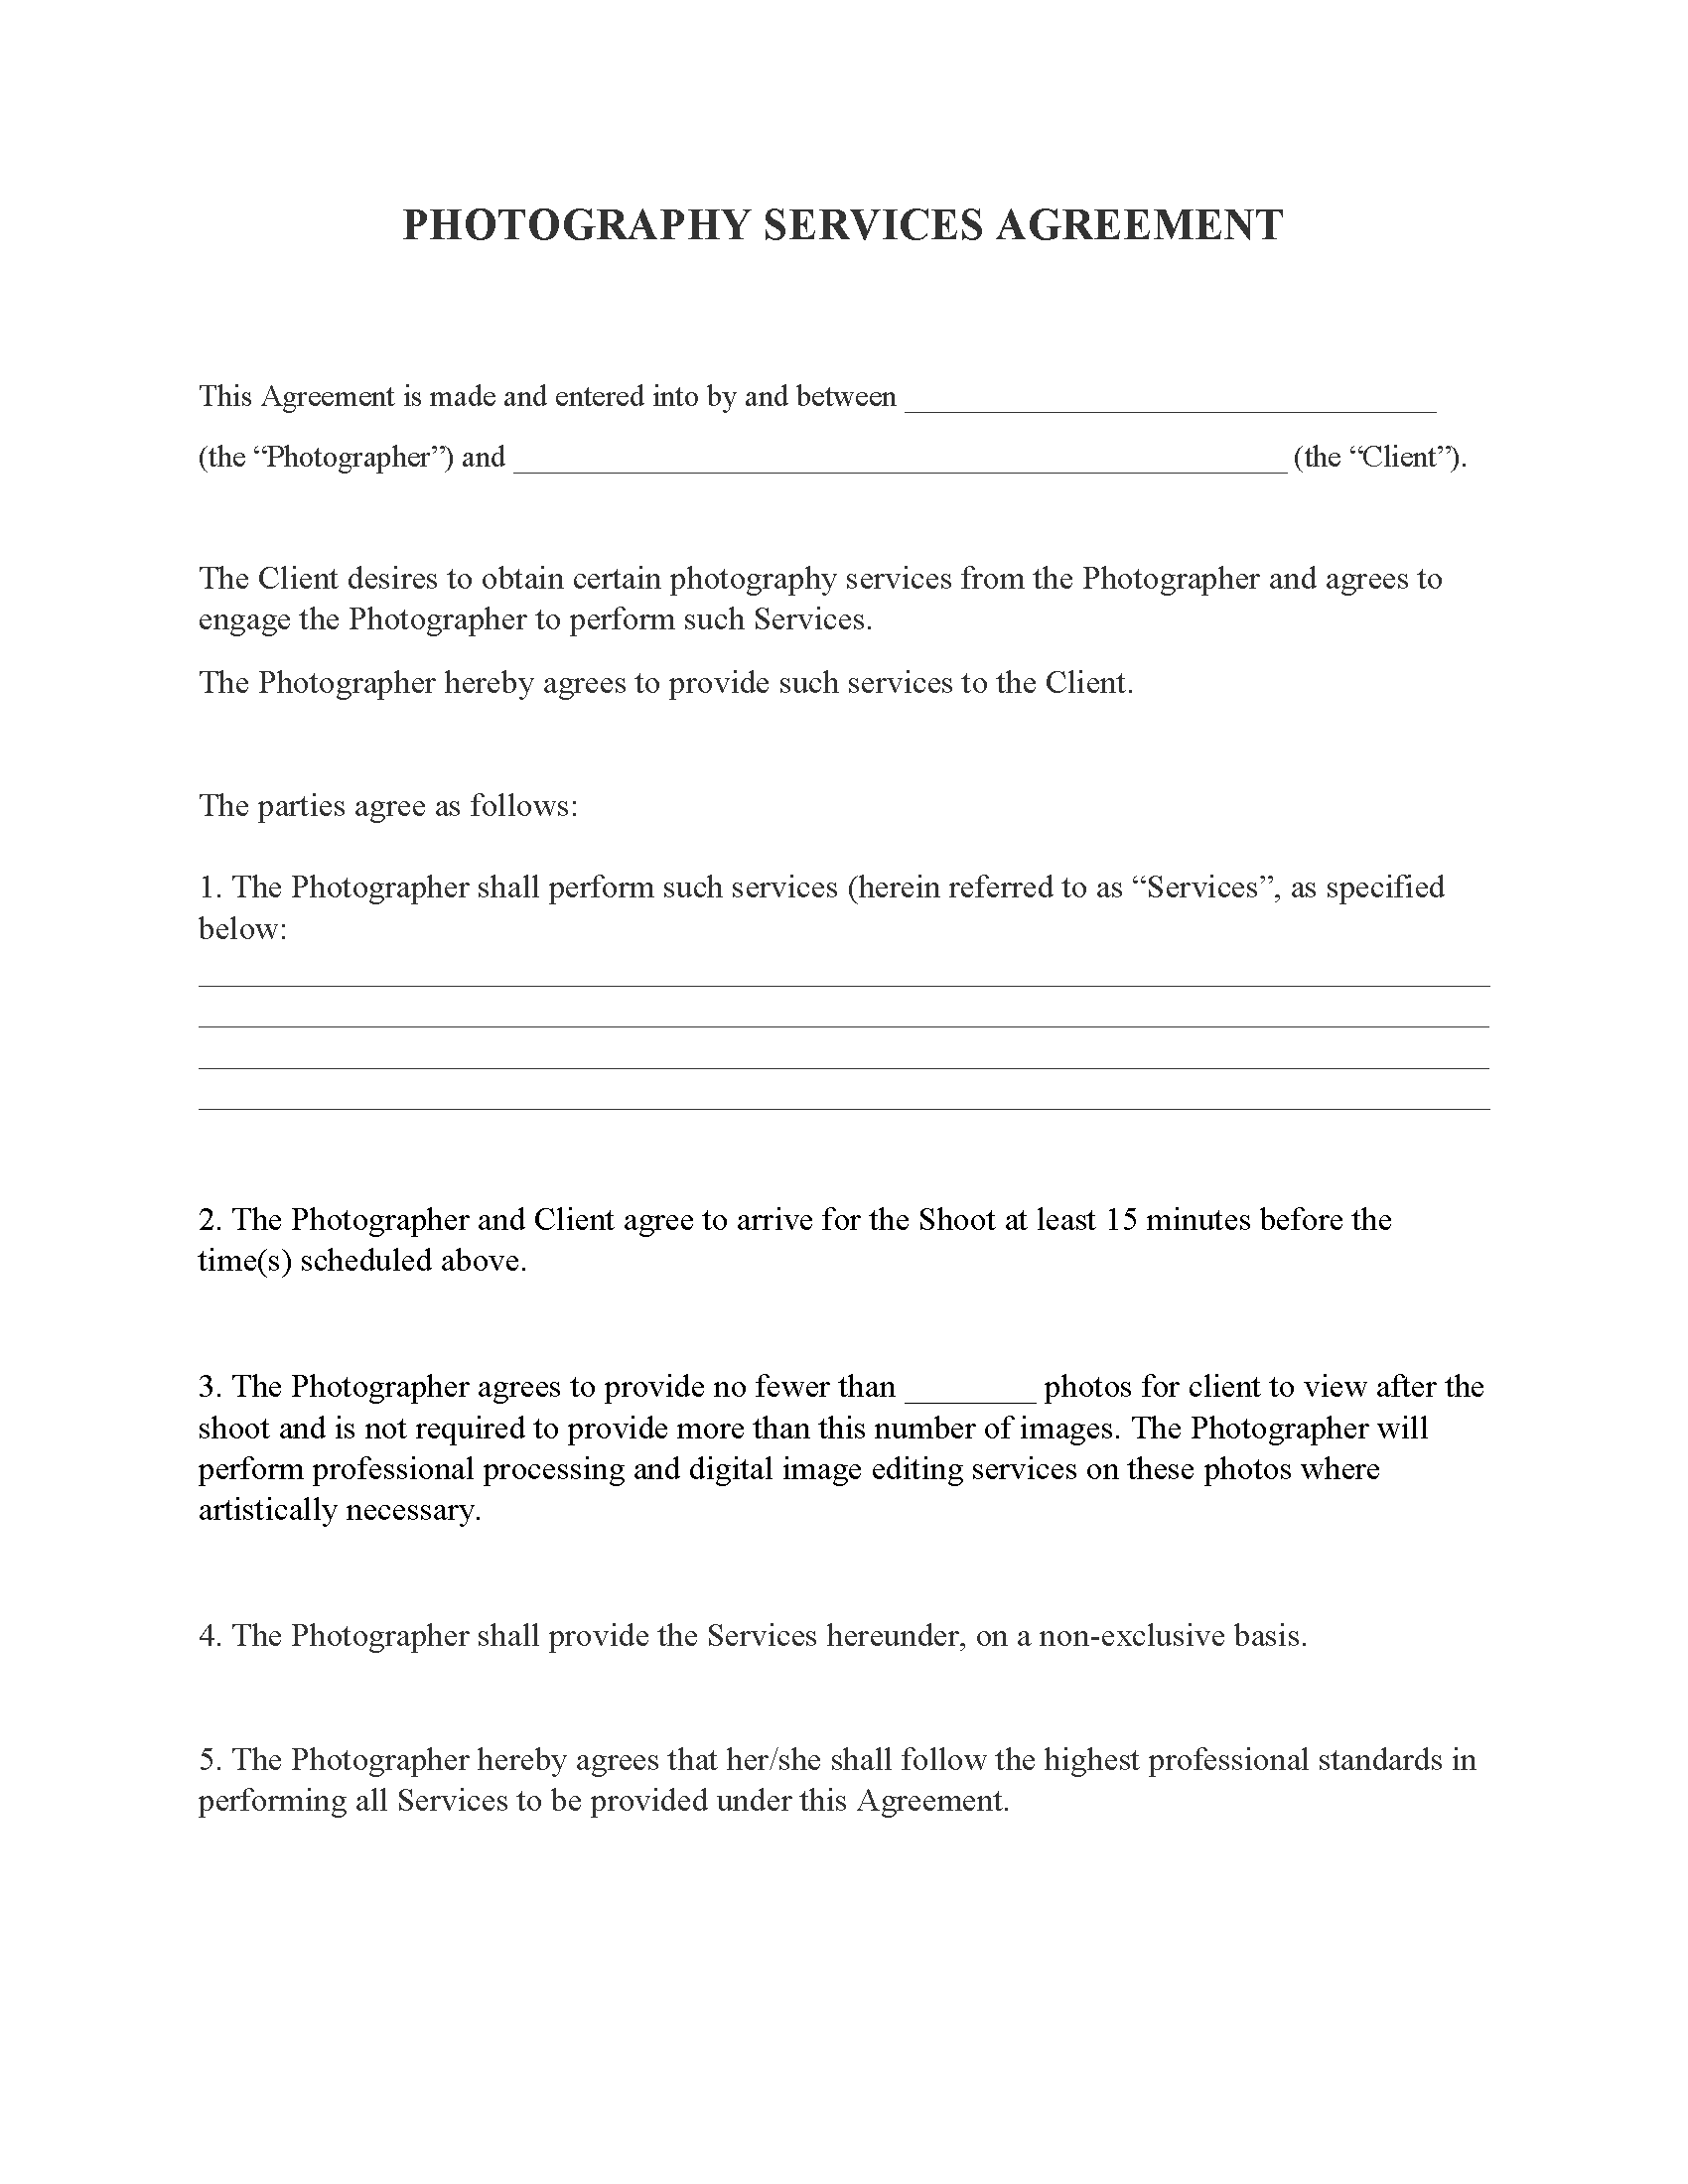 Photography Services Agreement Contract